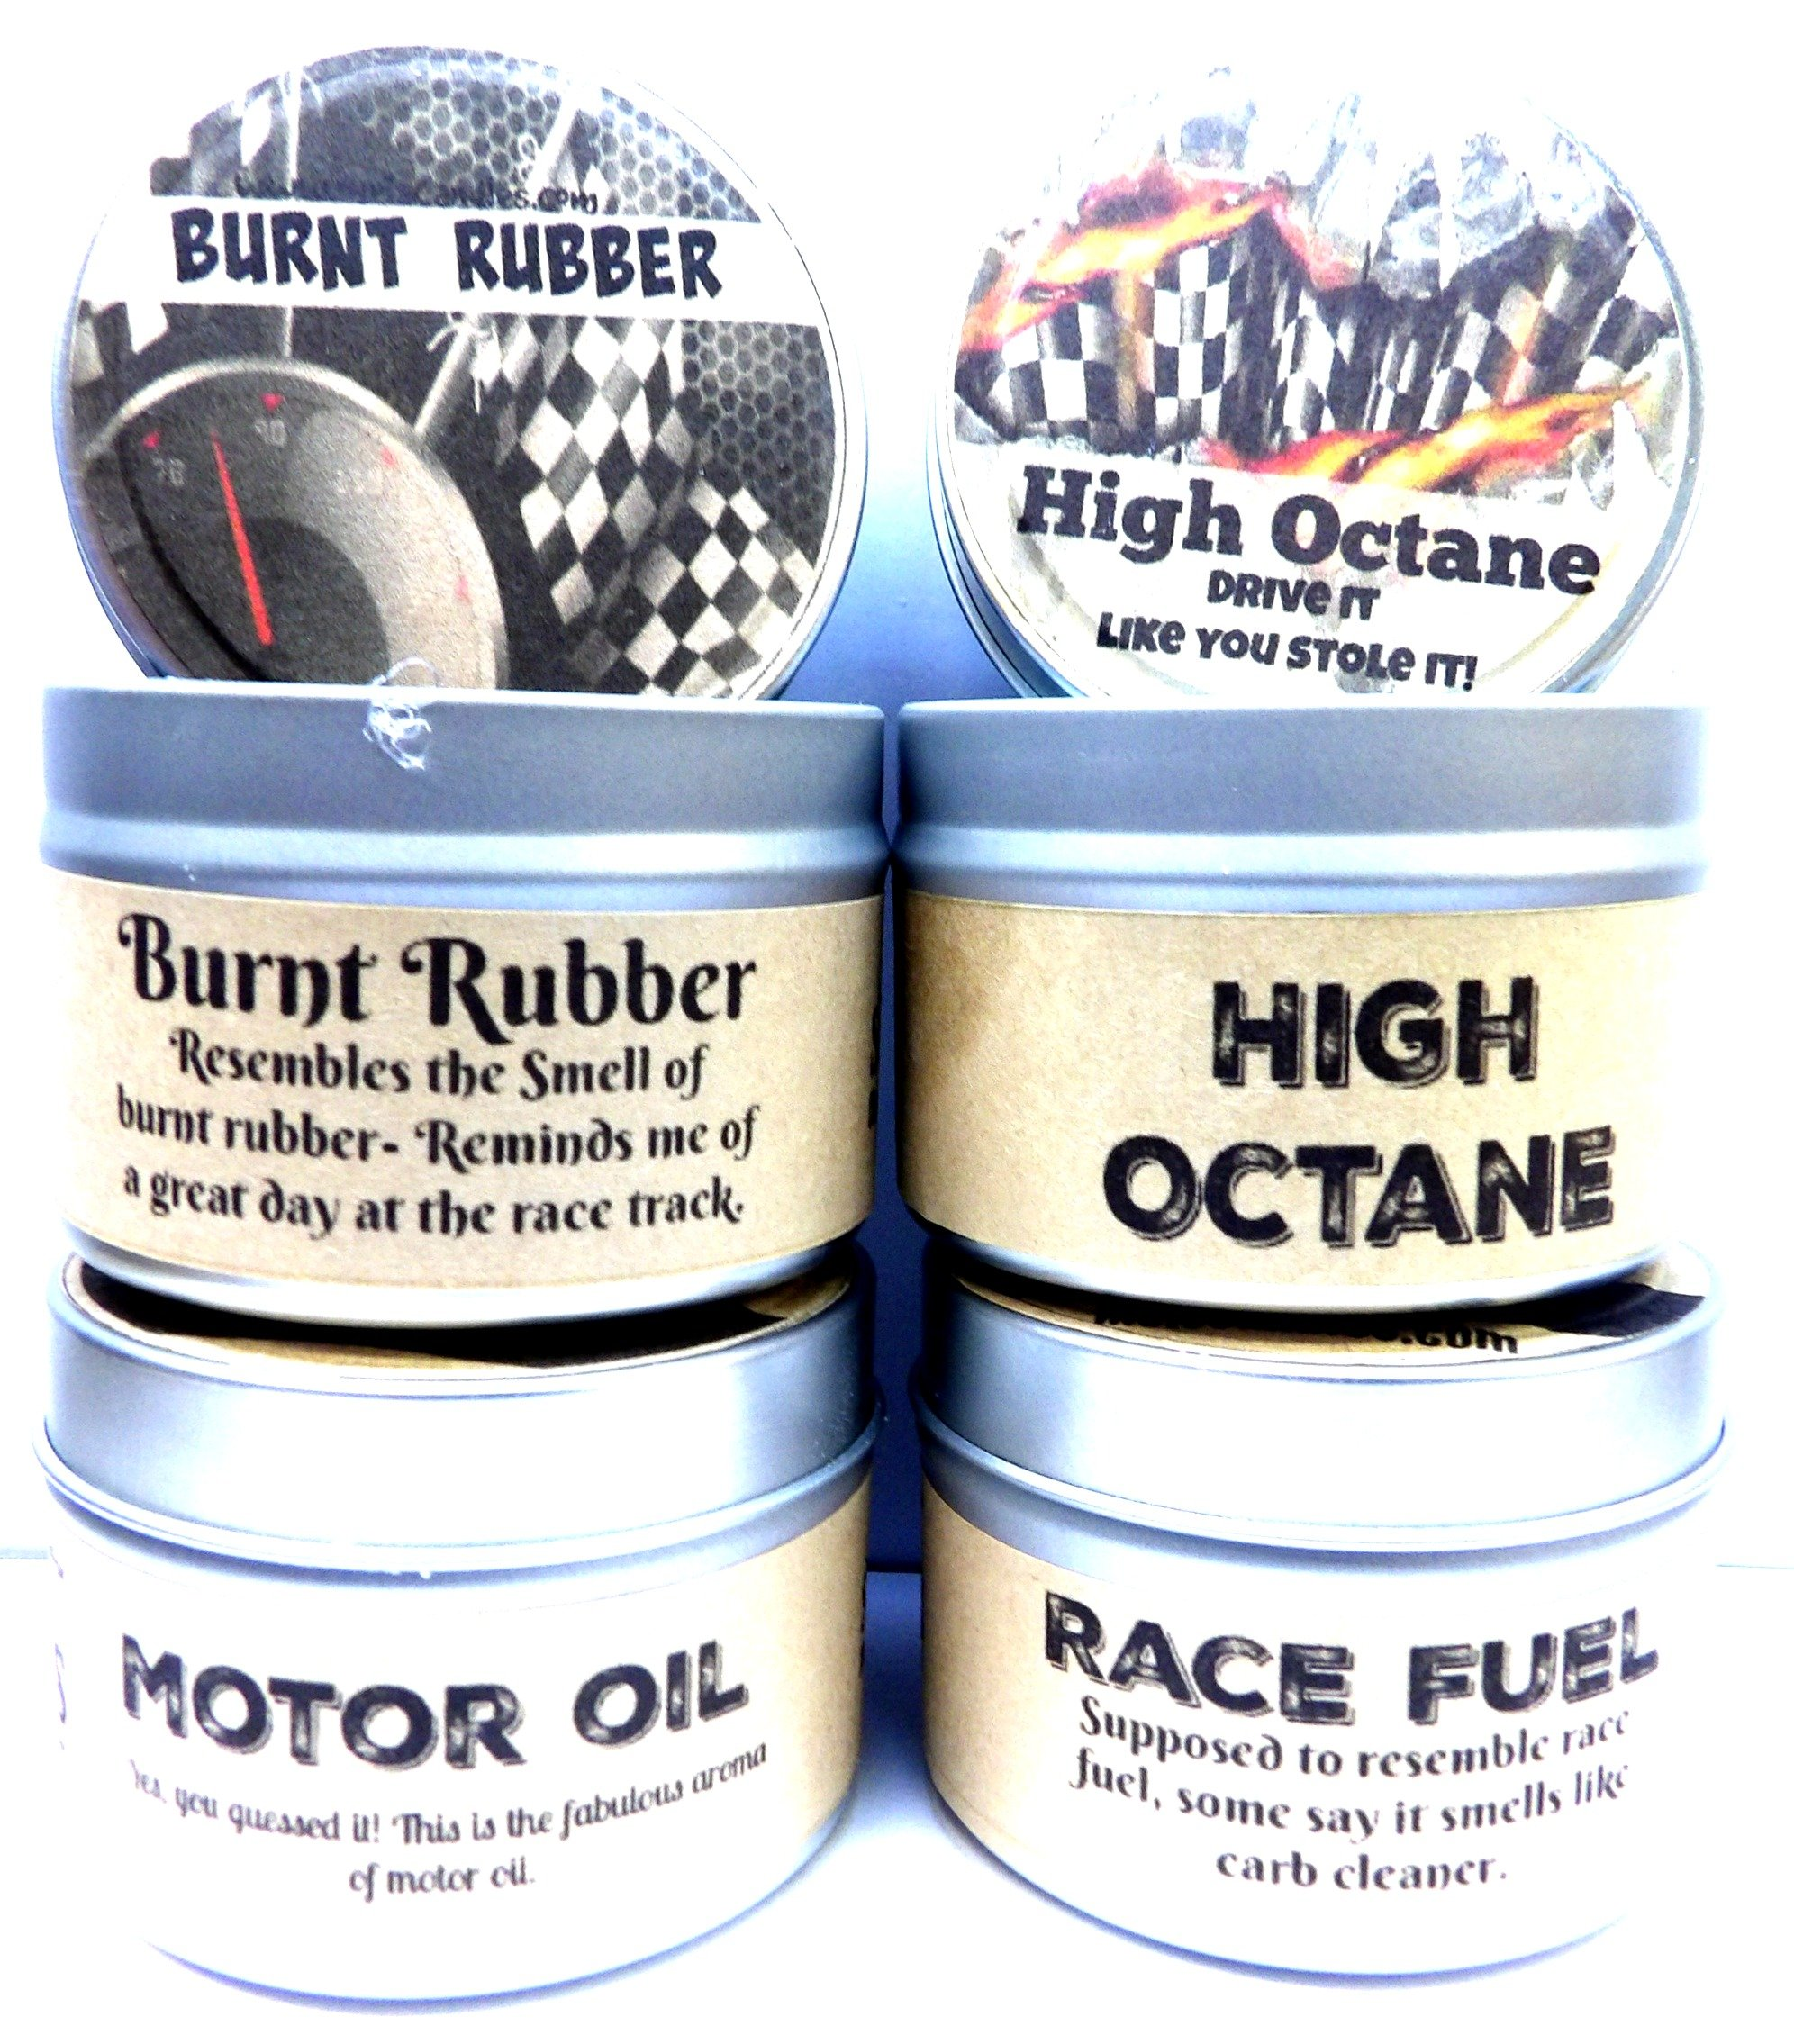 Combo Set of 4 - High Octane, Race Fuel, Motor Oil & Burnt Rubber 4 Oz All Natural Soy Candle Tins